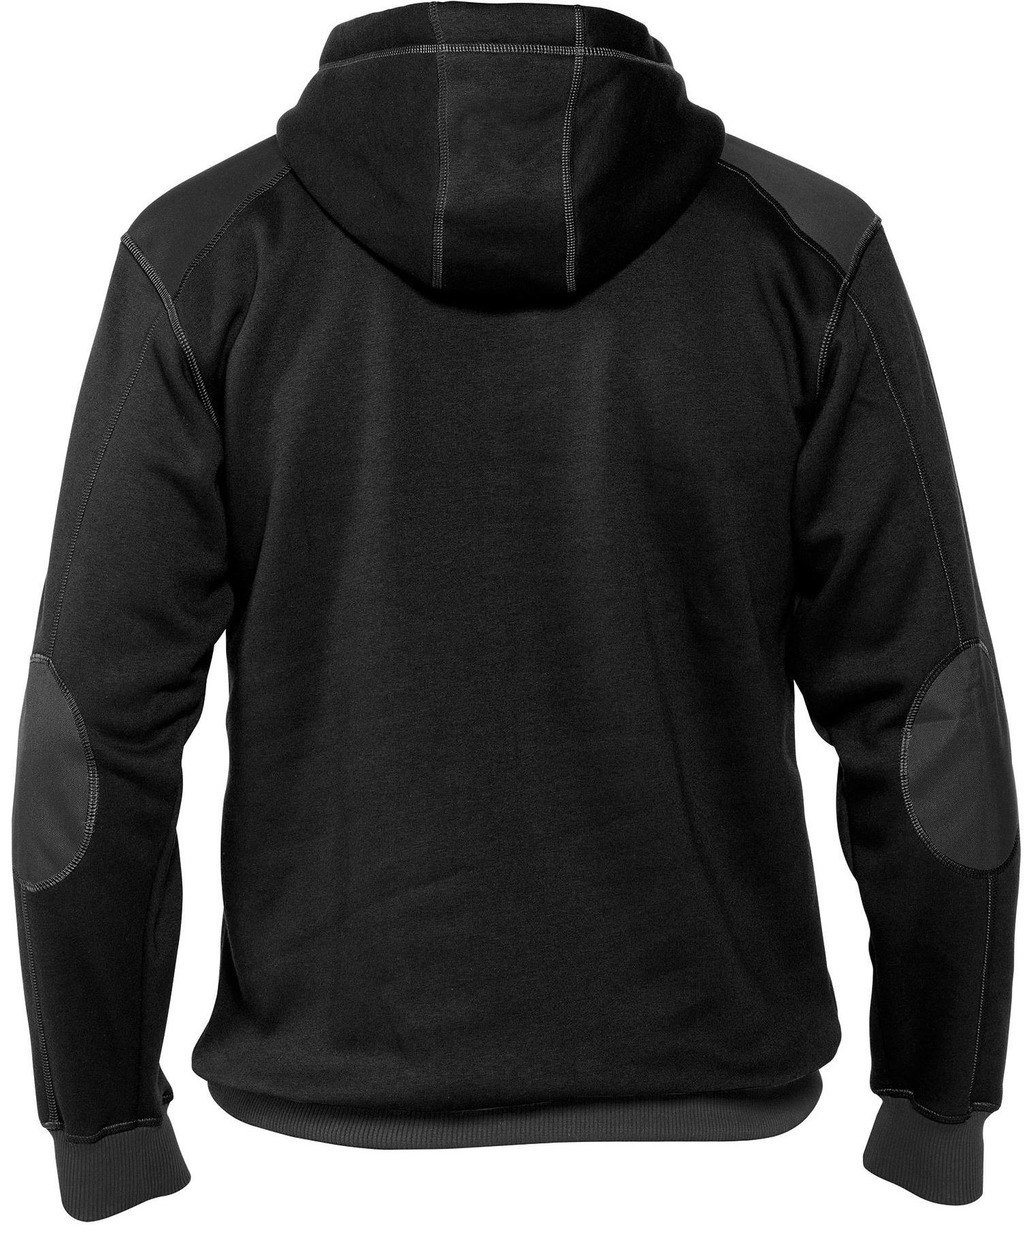 INDY Hooded sweater